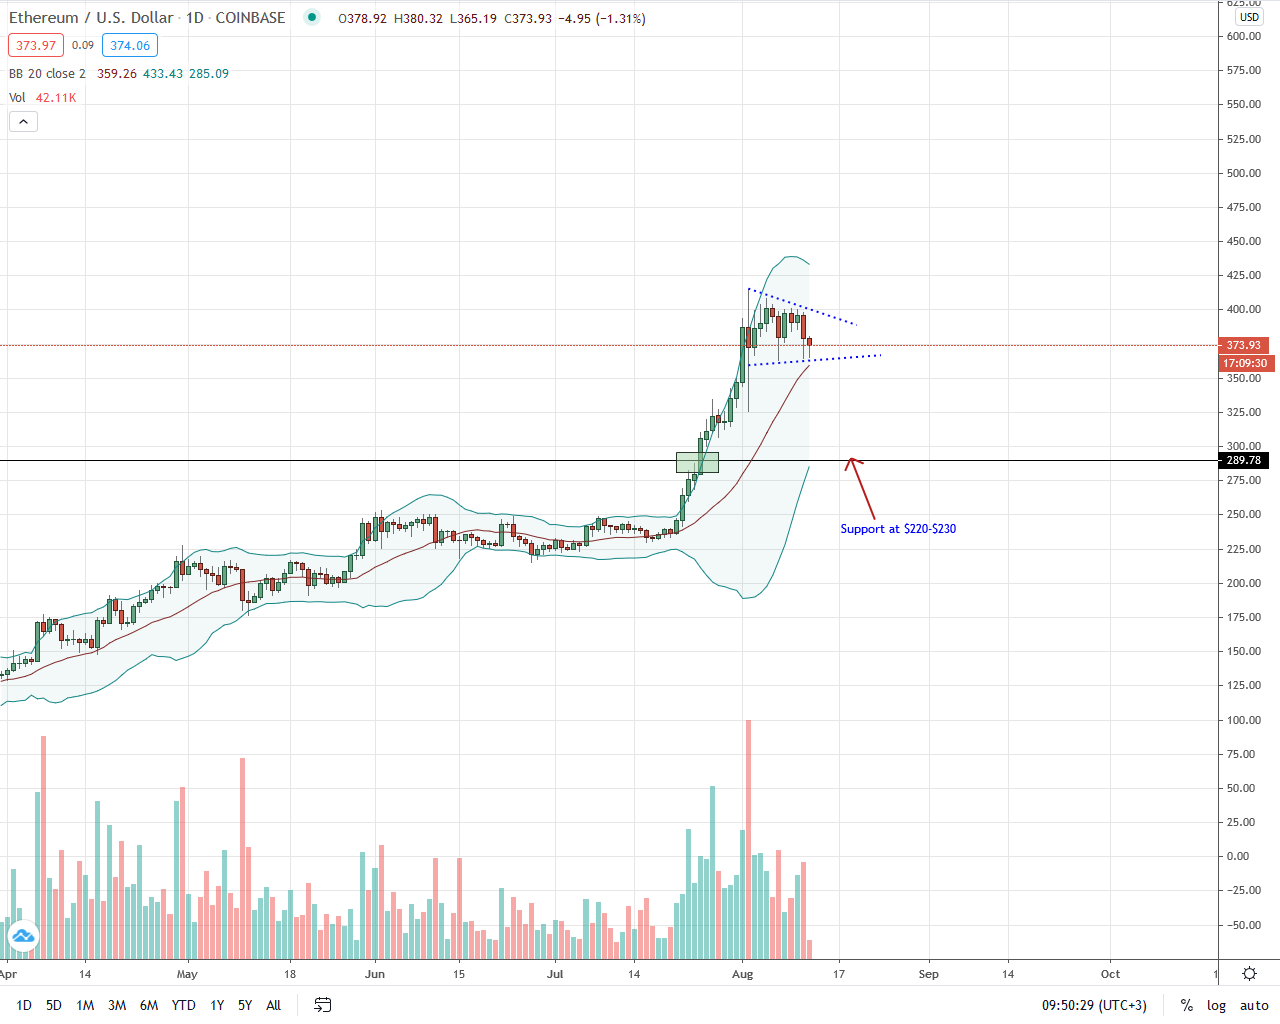 Ethereum Daily Chart for Aug 12